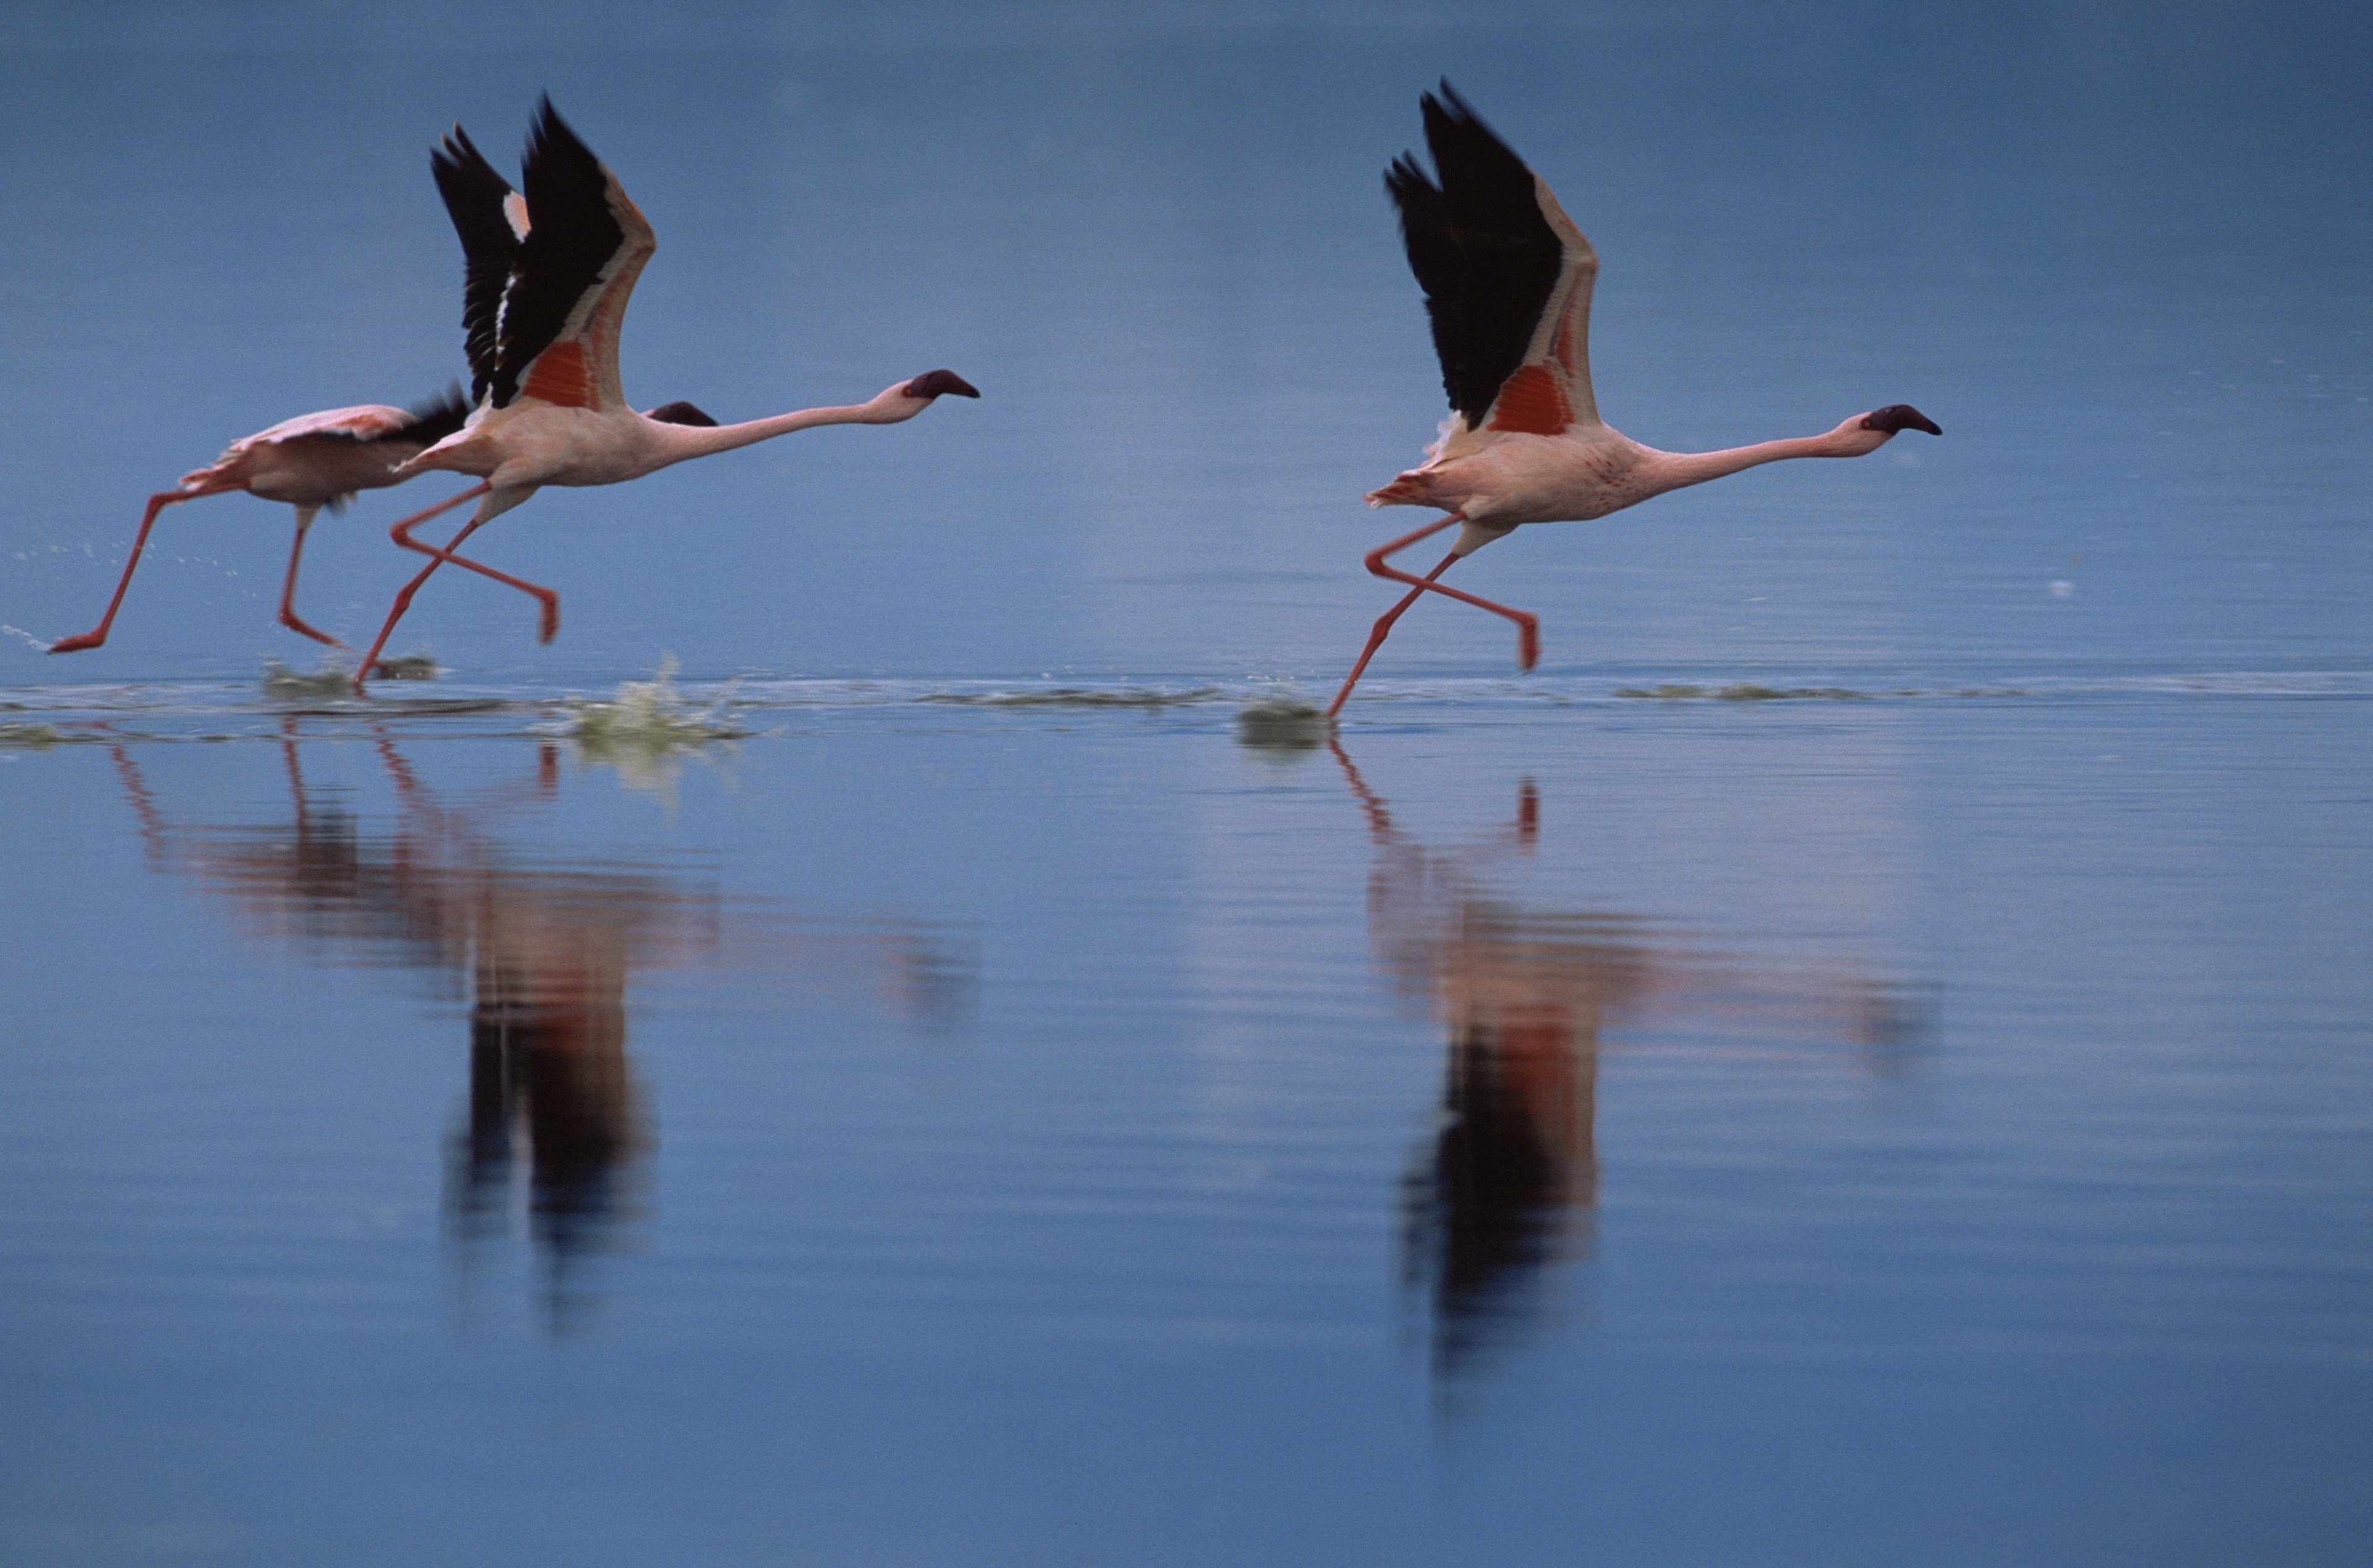 Gliding on top of the water.